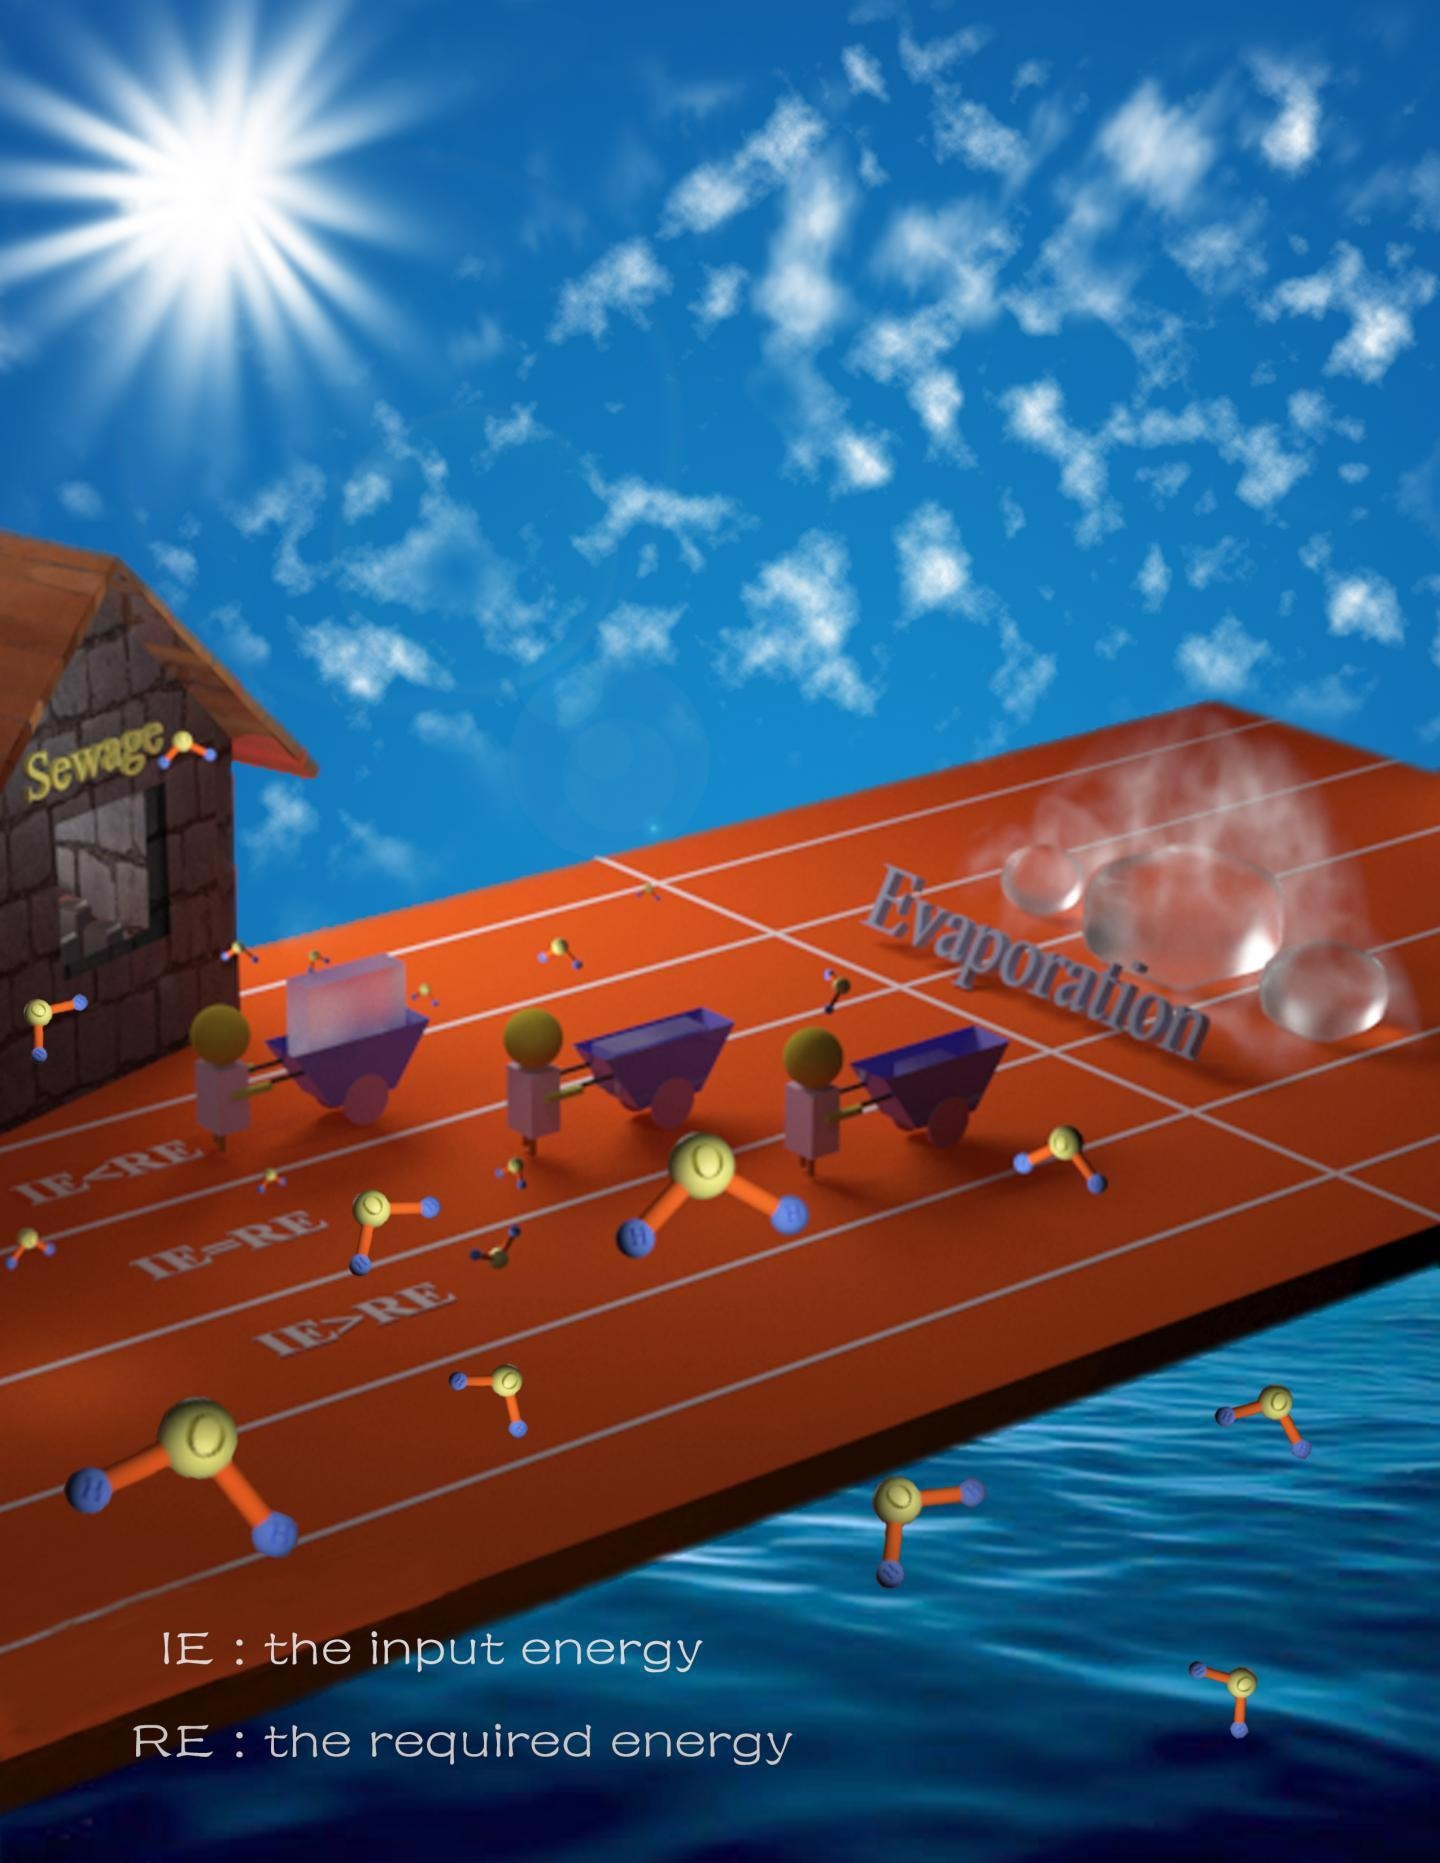 Scientists have now come up with a strategy to increase the evaporation rate of water by matching the energy required for vaporization with the input energy, paving the way for improved efficiency of direct solar steam generation.